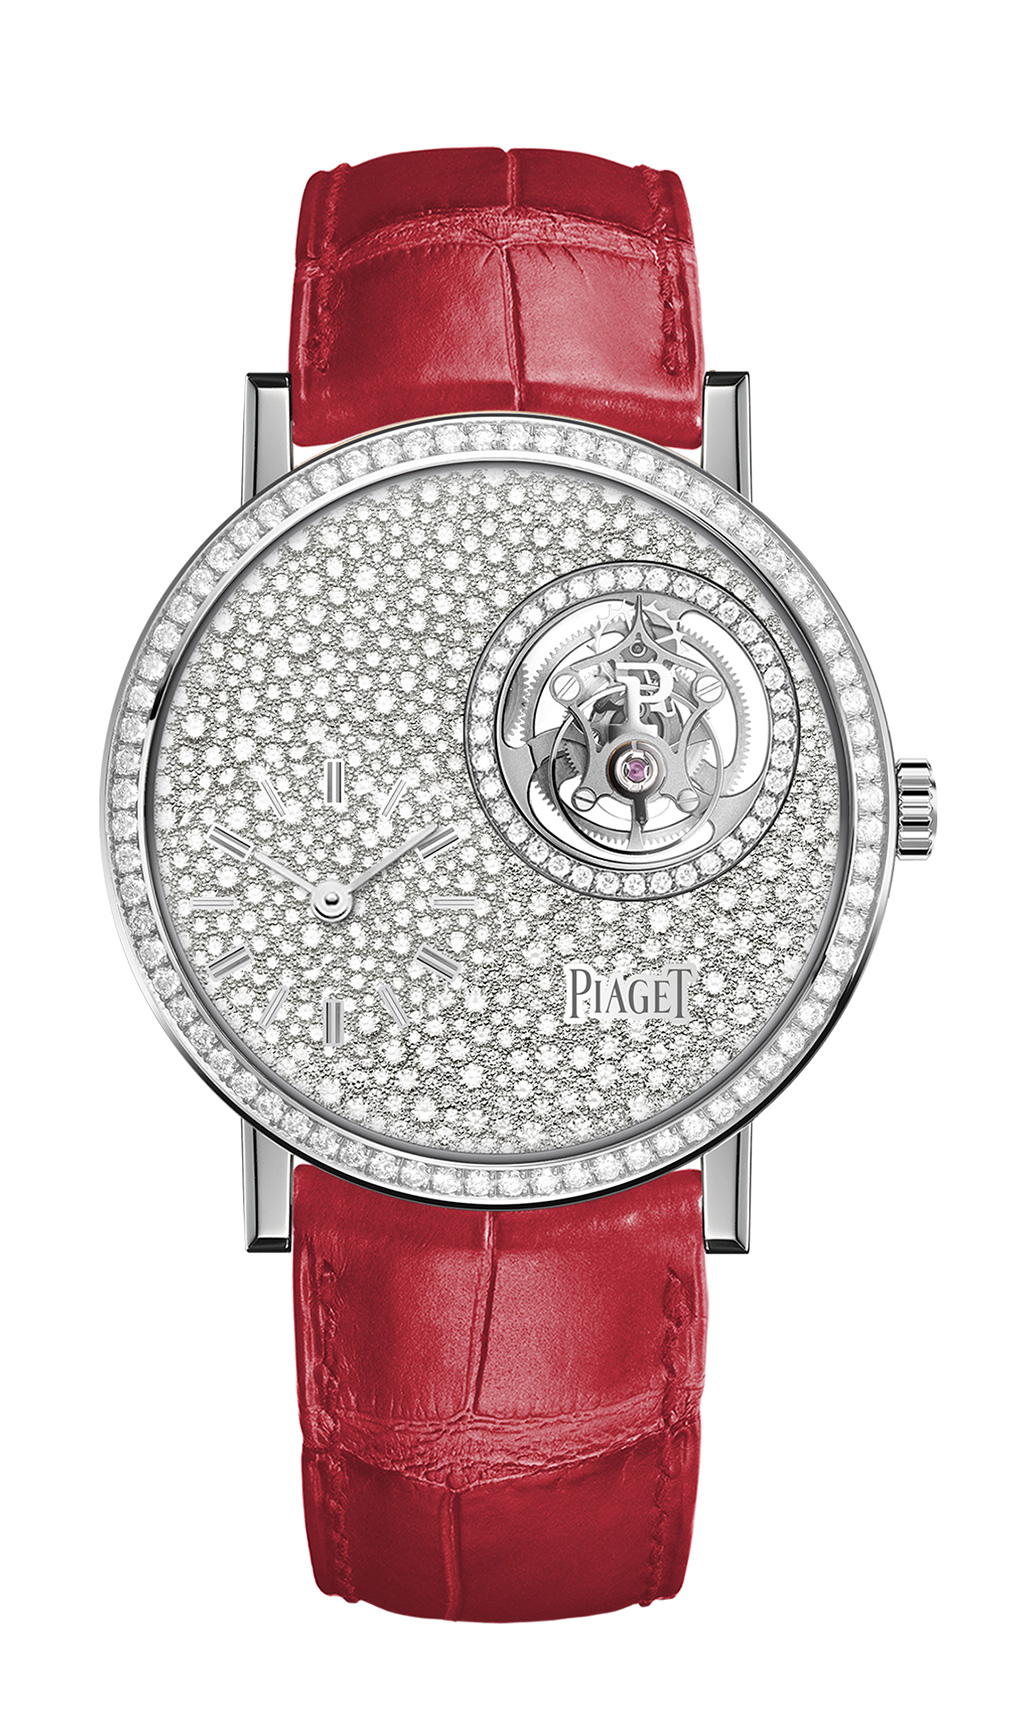 Two variations of the Piaget Altiplano Tourbillon - Infinitely Personal